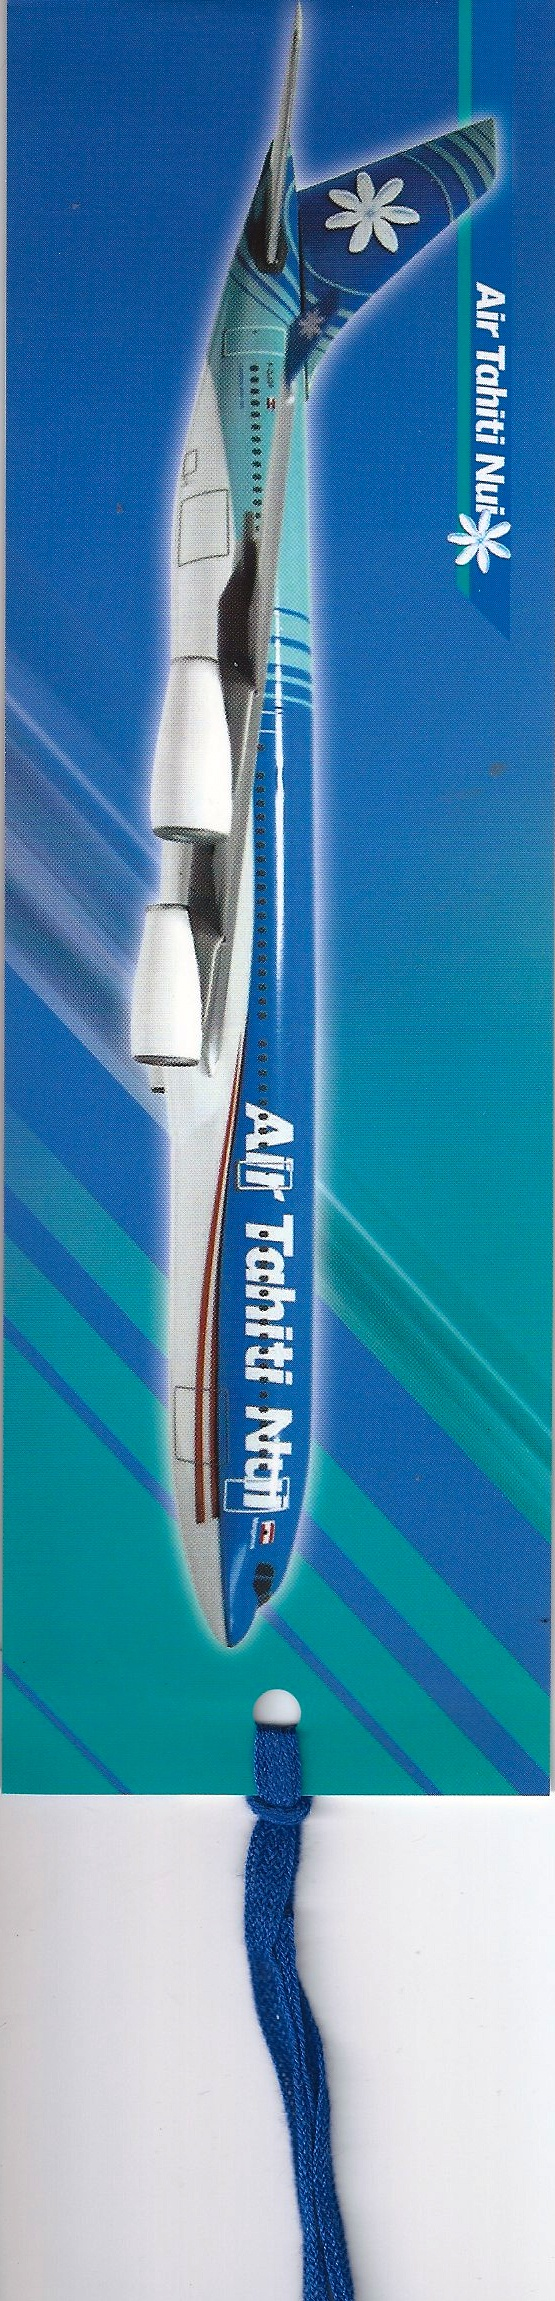 Air Tahiti Nui bookmark  LOL  Rule #1 of airline marketing: never show the aircraft in nose-down position. Never ever ever ever. Sigh. They probably thought this was a good idea. Pretty airplanes though.